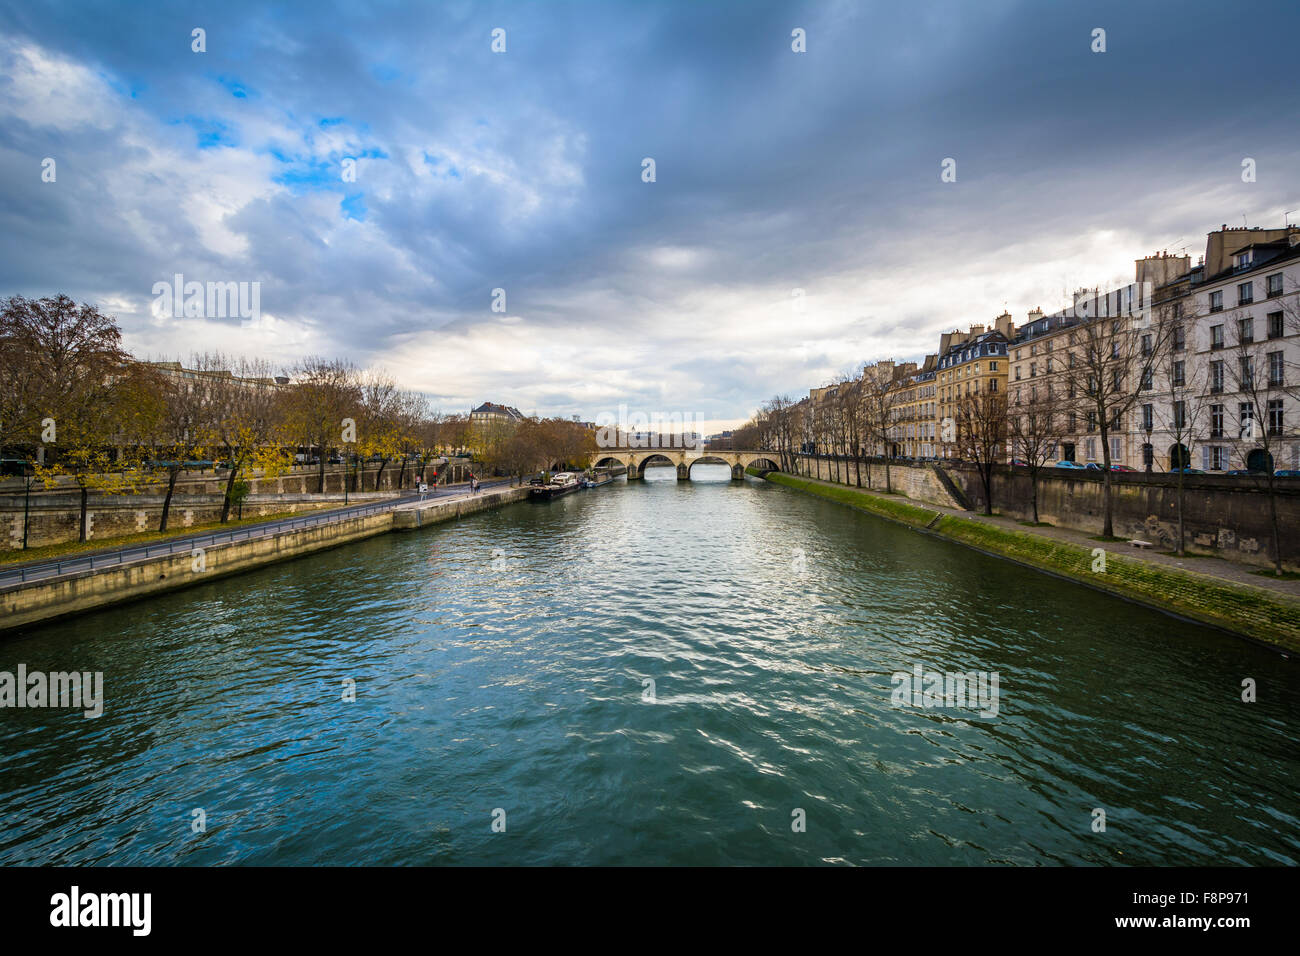 The Seine, in Paris, France. - Stock Image